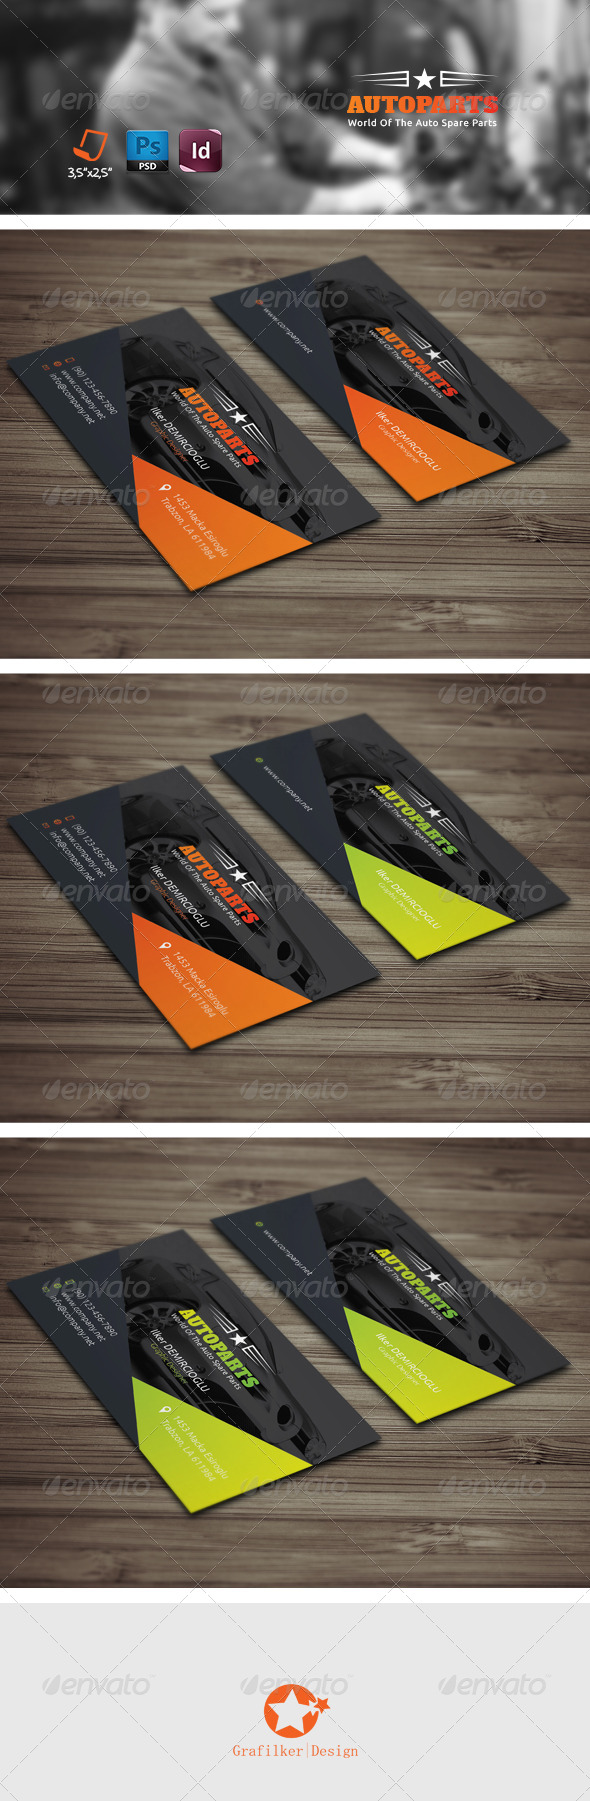 GraphicRiver Auto Services Business Card Templates 7845792